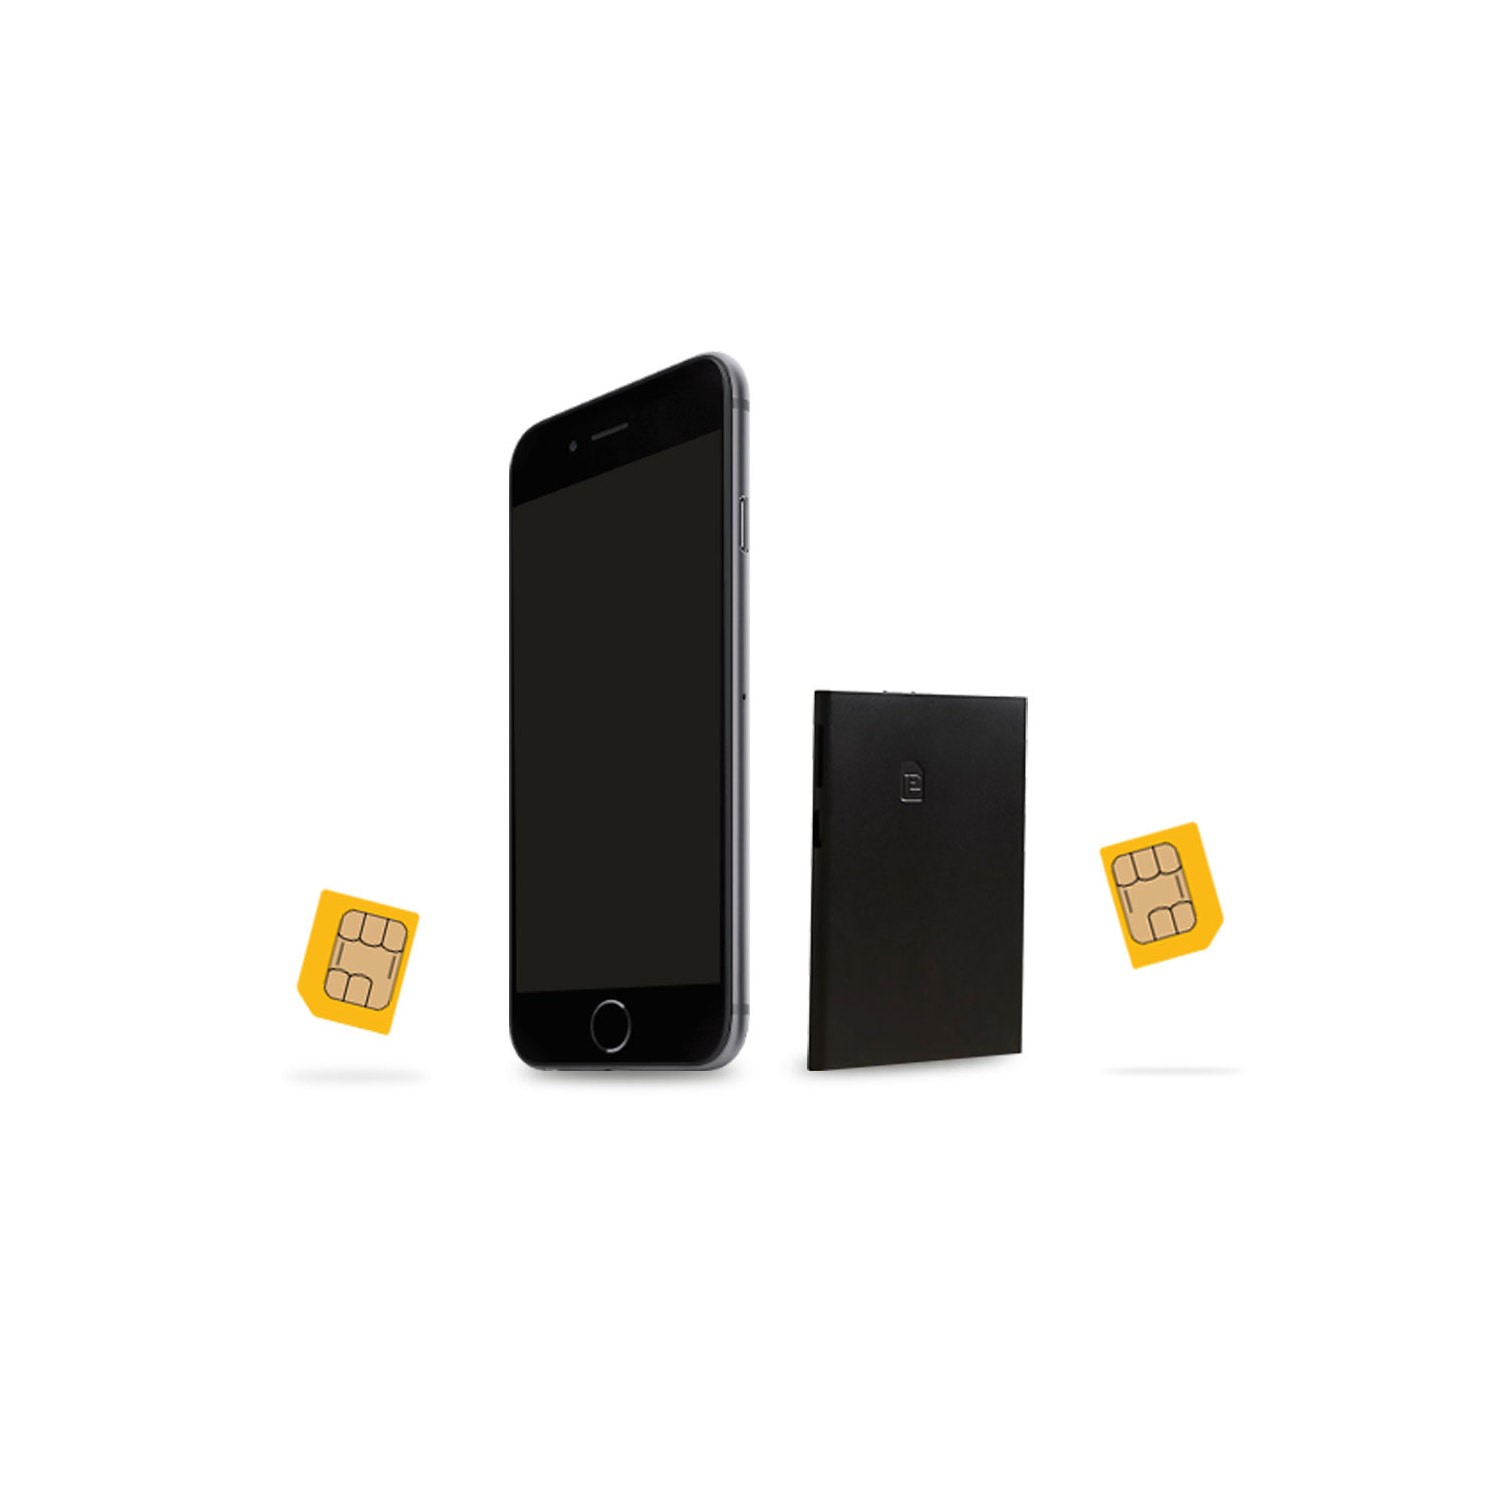 Dual SIM Converter - Add a Second SIM Card & Number to any Mobile Phone